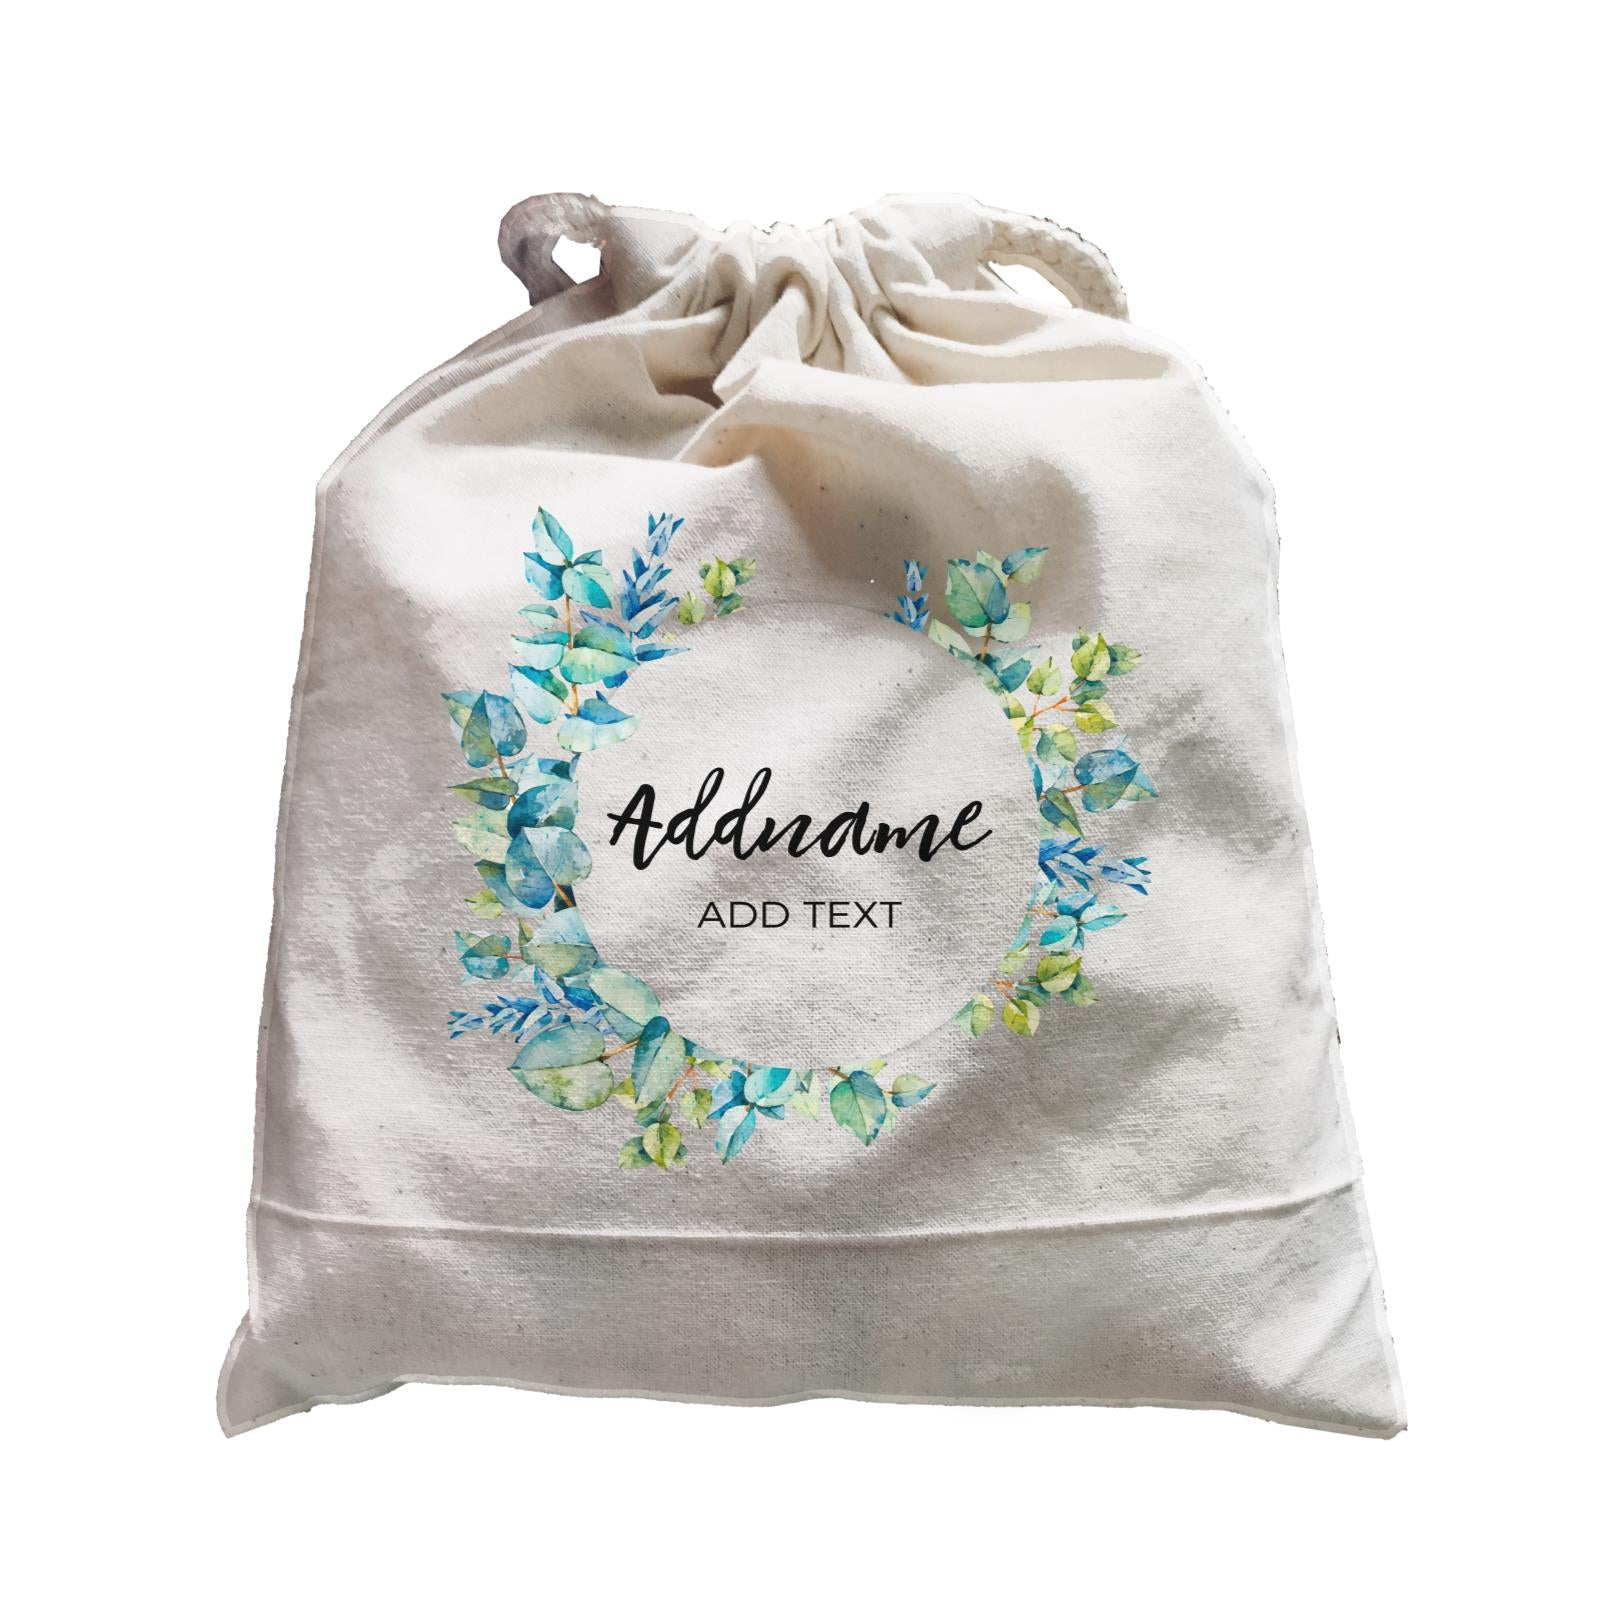 Add Your Own Text Teacher Blue Leaves Wreath Addname And Add Text Satchel